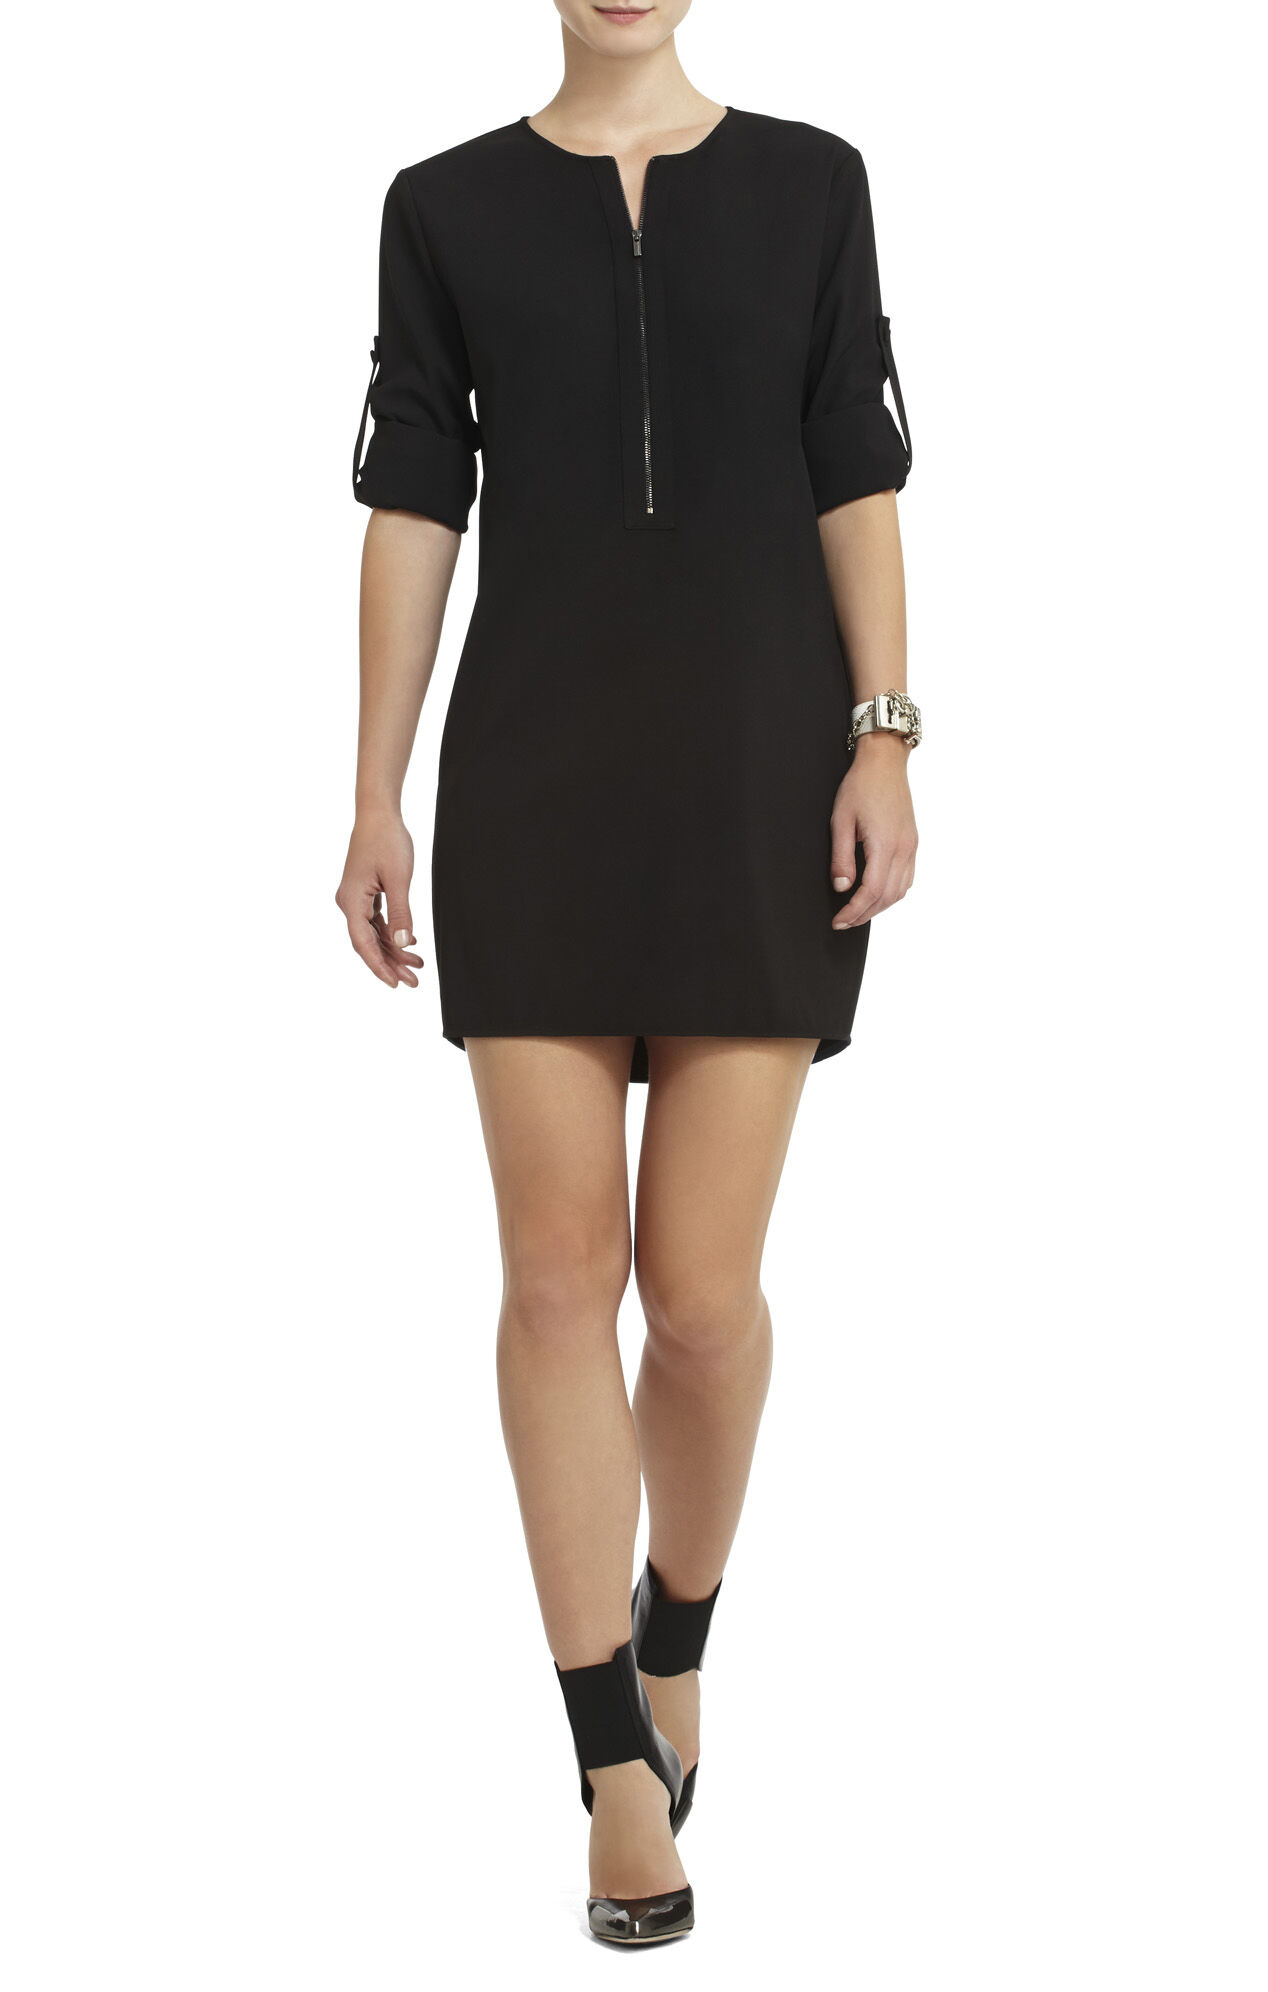 Mirabella Zipper Dress